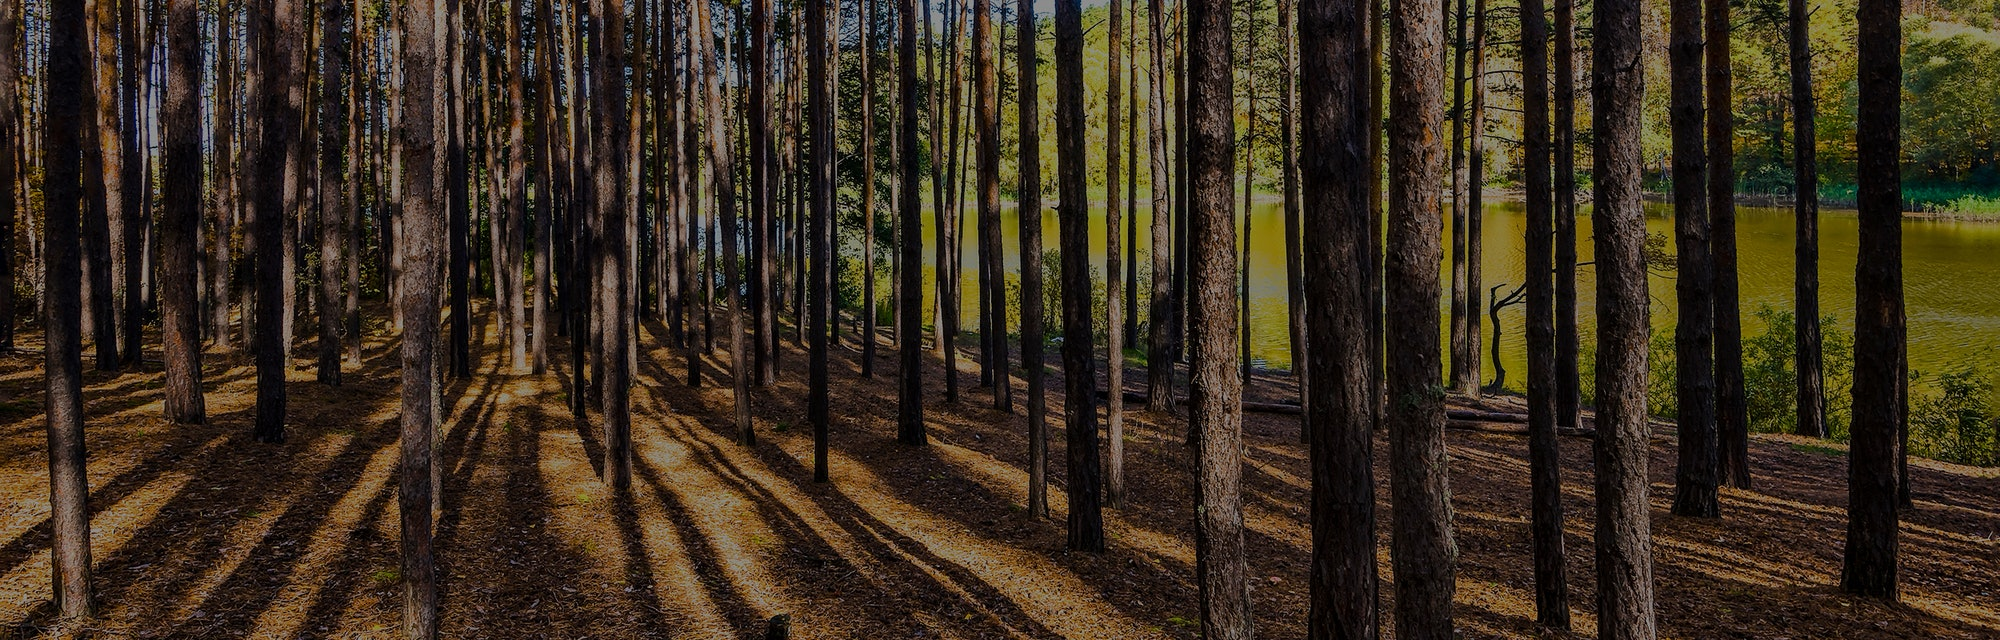 Pine tree forest. Forest trees shadows. Pine forest trees. Forest trees